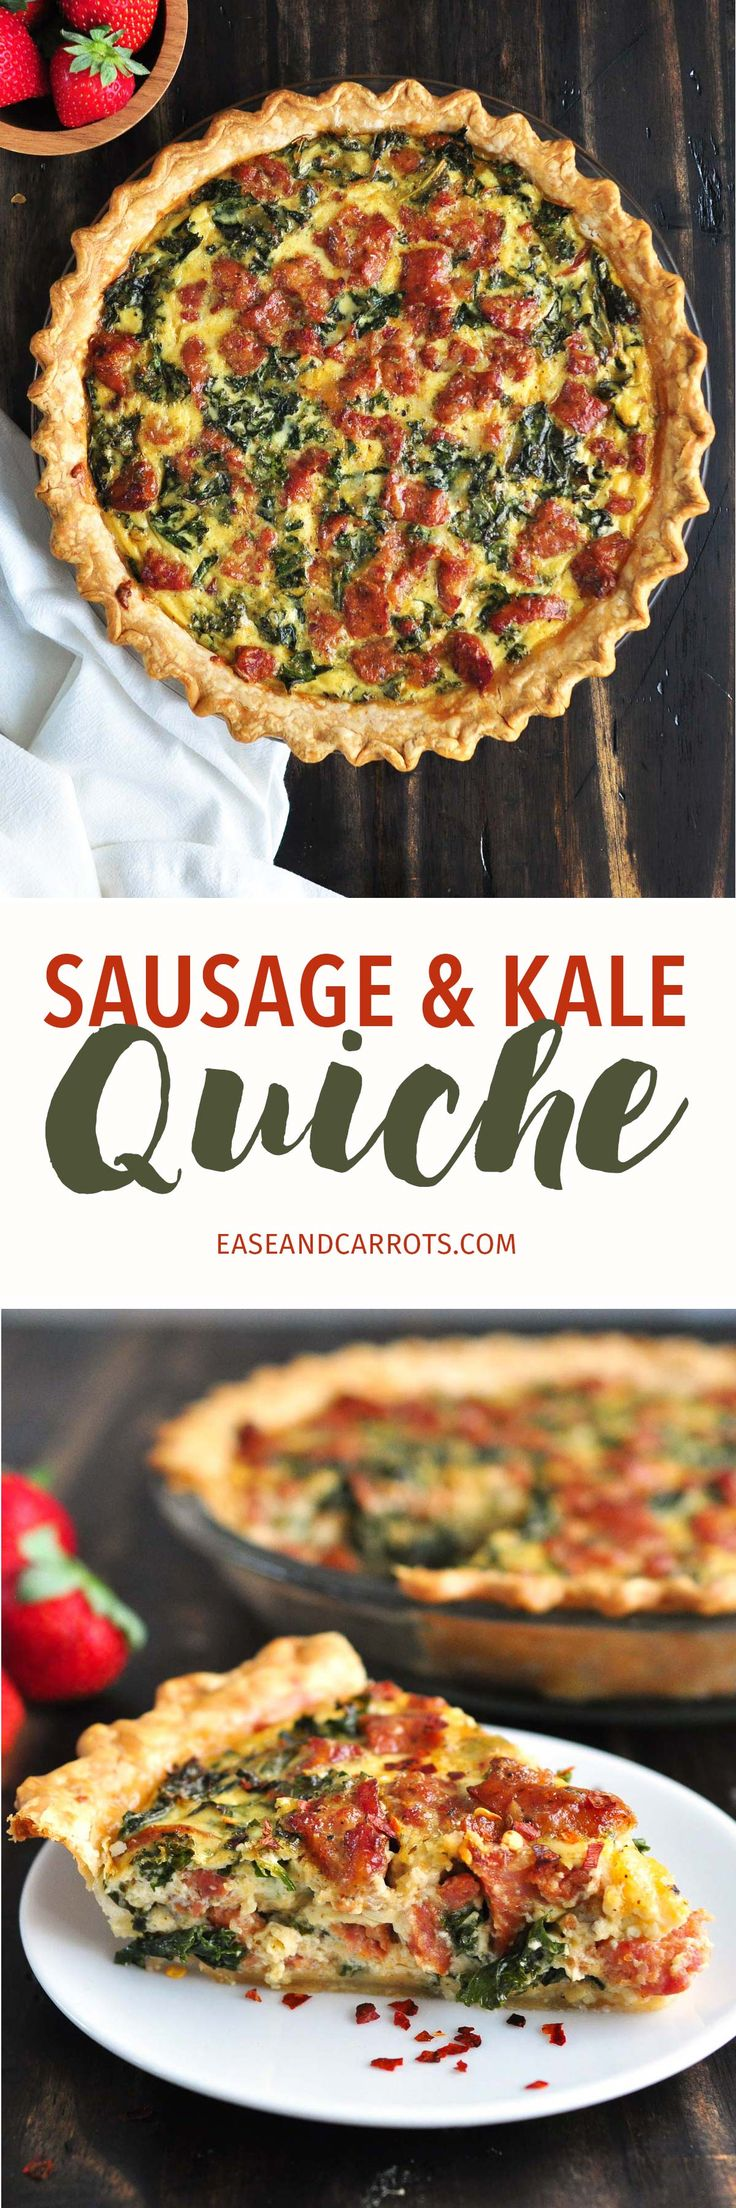 Sausage & Kale Quiche Recipe. A super easy, hearty quiche recipe that is great for Sunday brunch or even a weeknight dinner!